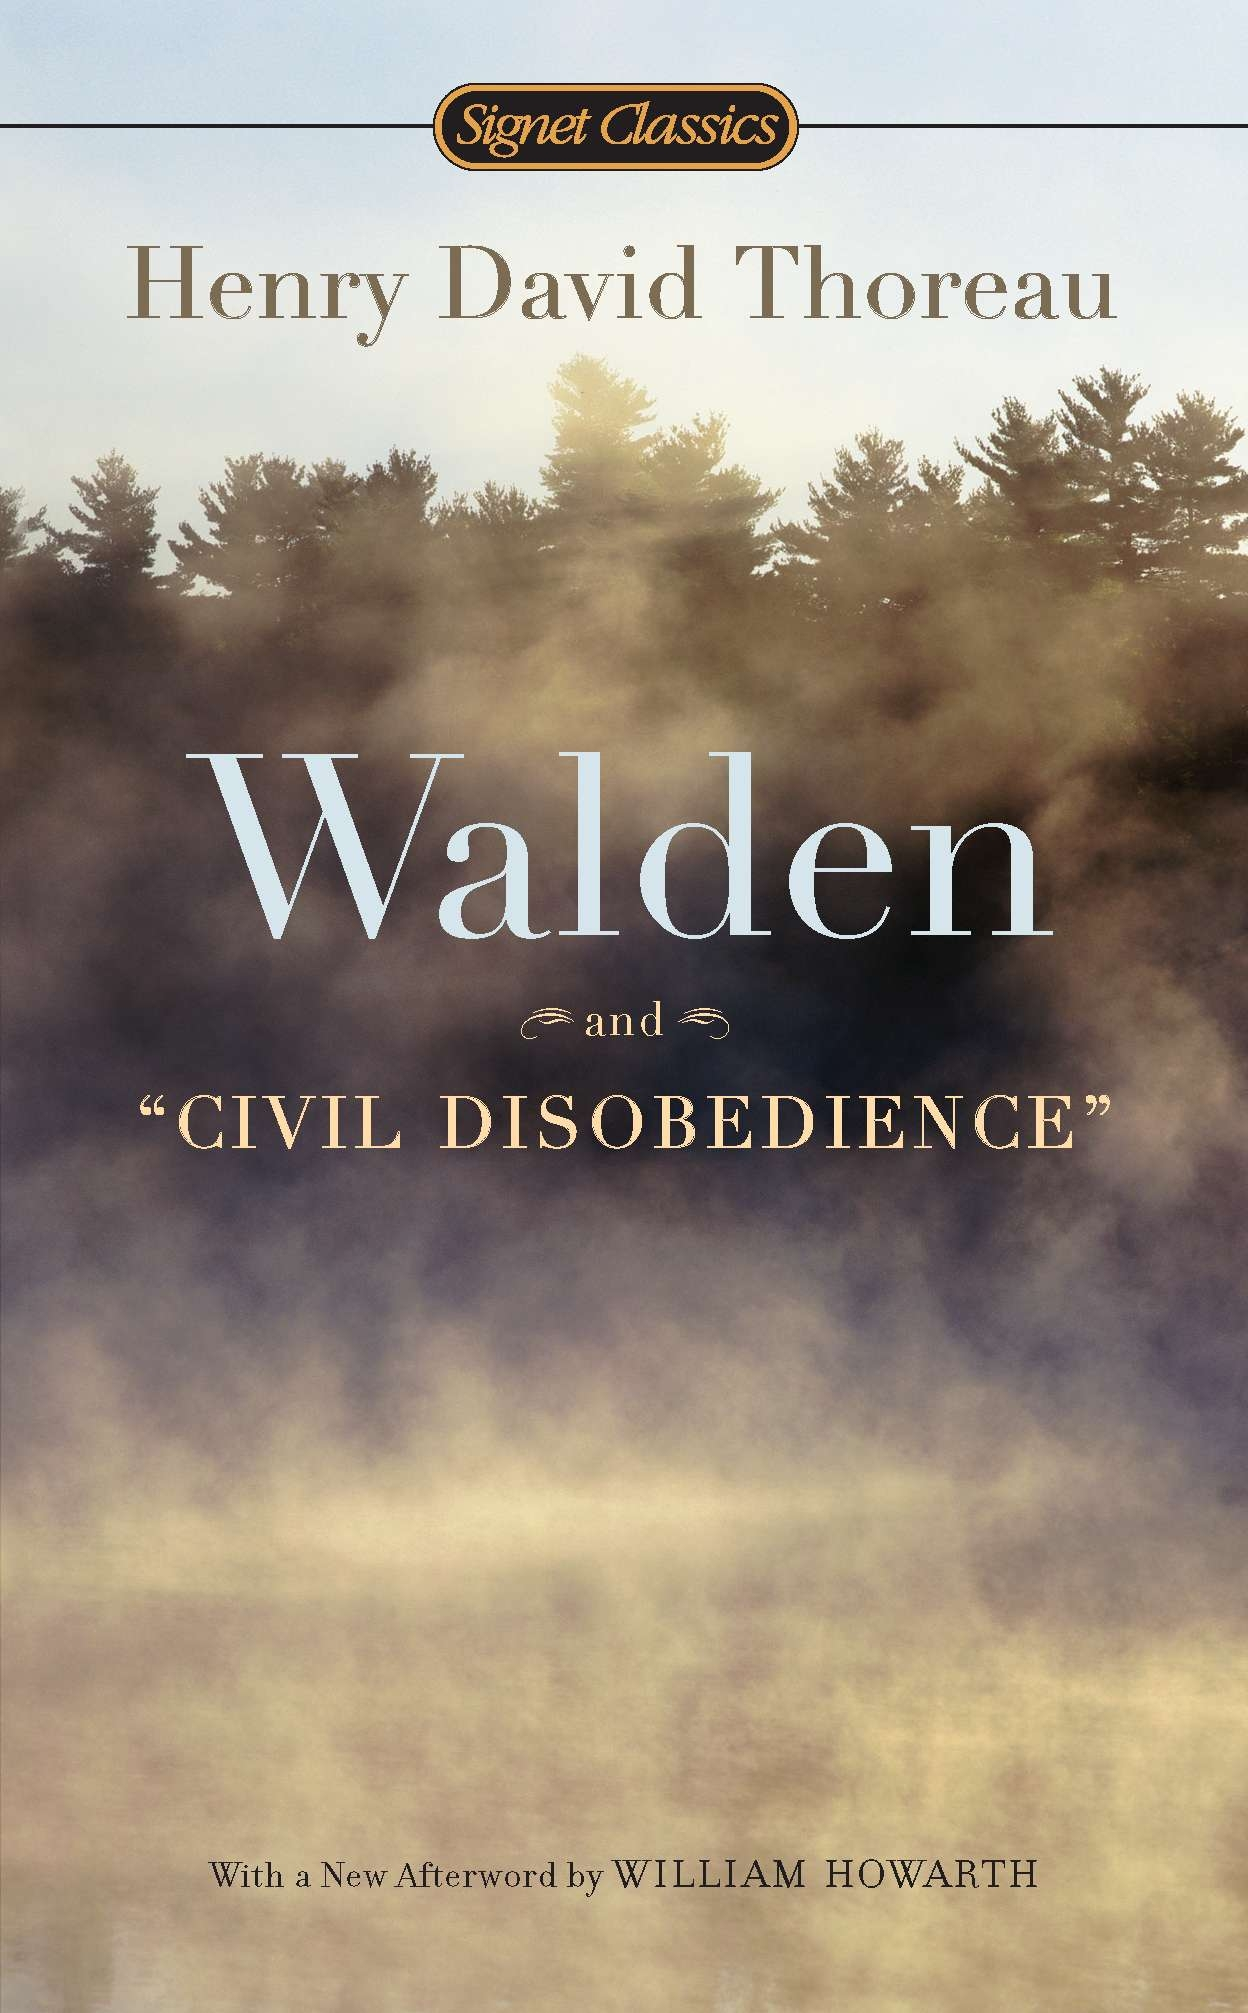 Walden And Civil Disobedience By Henry David Thoreau  Penguin Books  Walden And Civil Disobedience